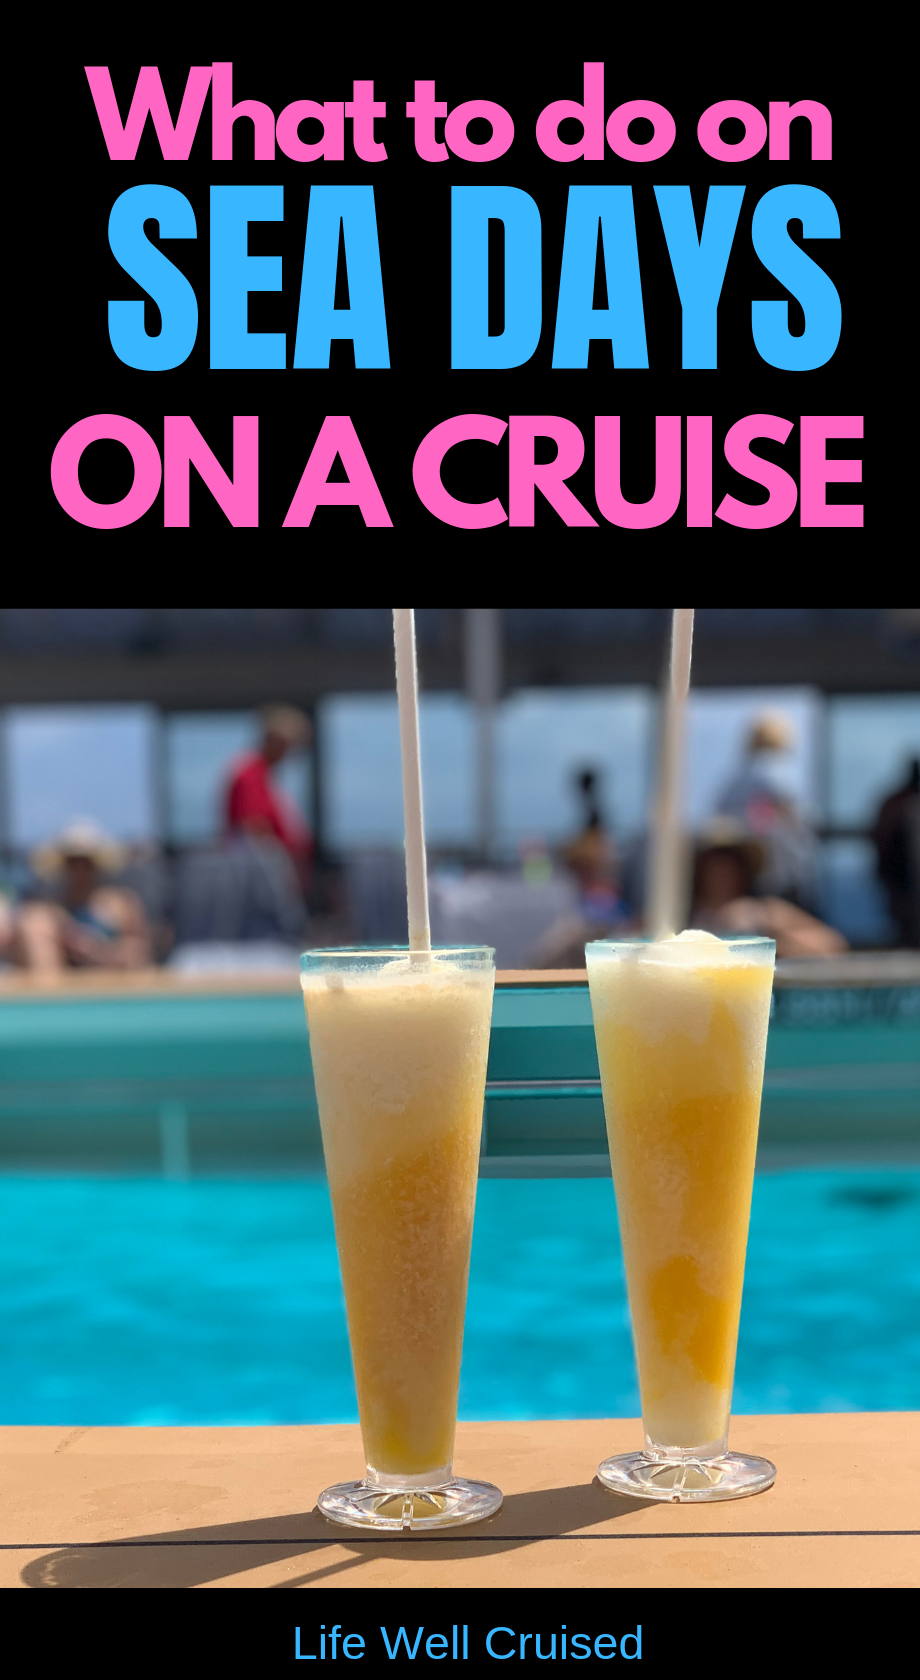 Disney Cruise Ship Engine Room: 27 Things To Do On A Cruise Sea Day (and Not Be Bored